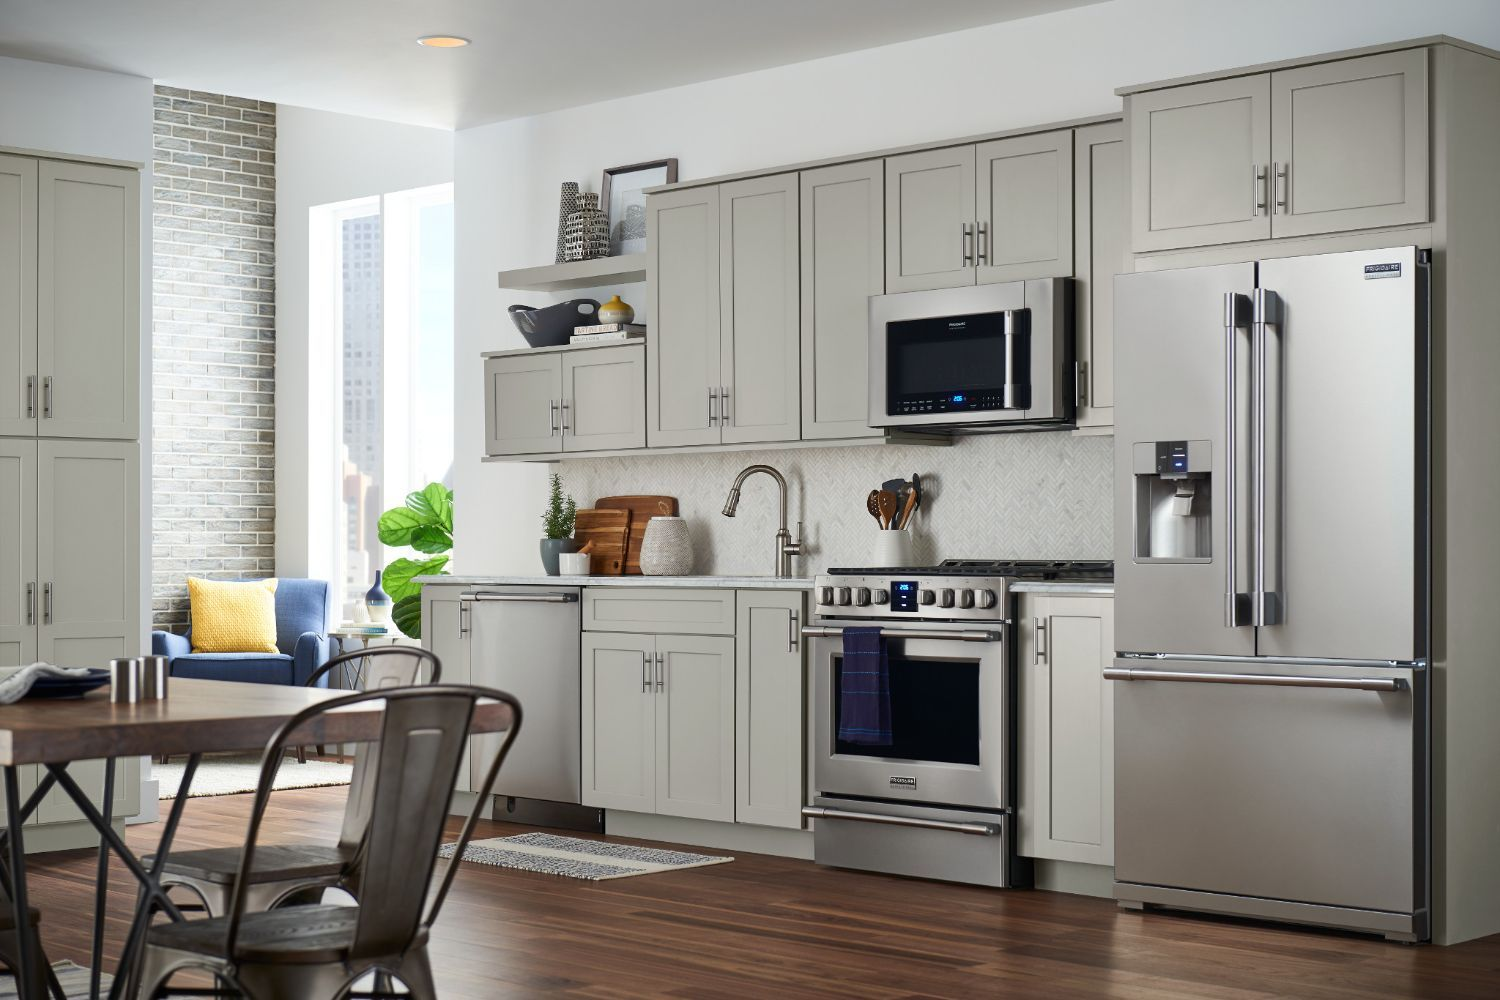 Breckenridge | Shenandoah Cabinetry